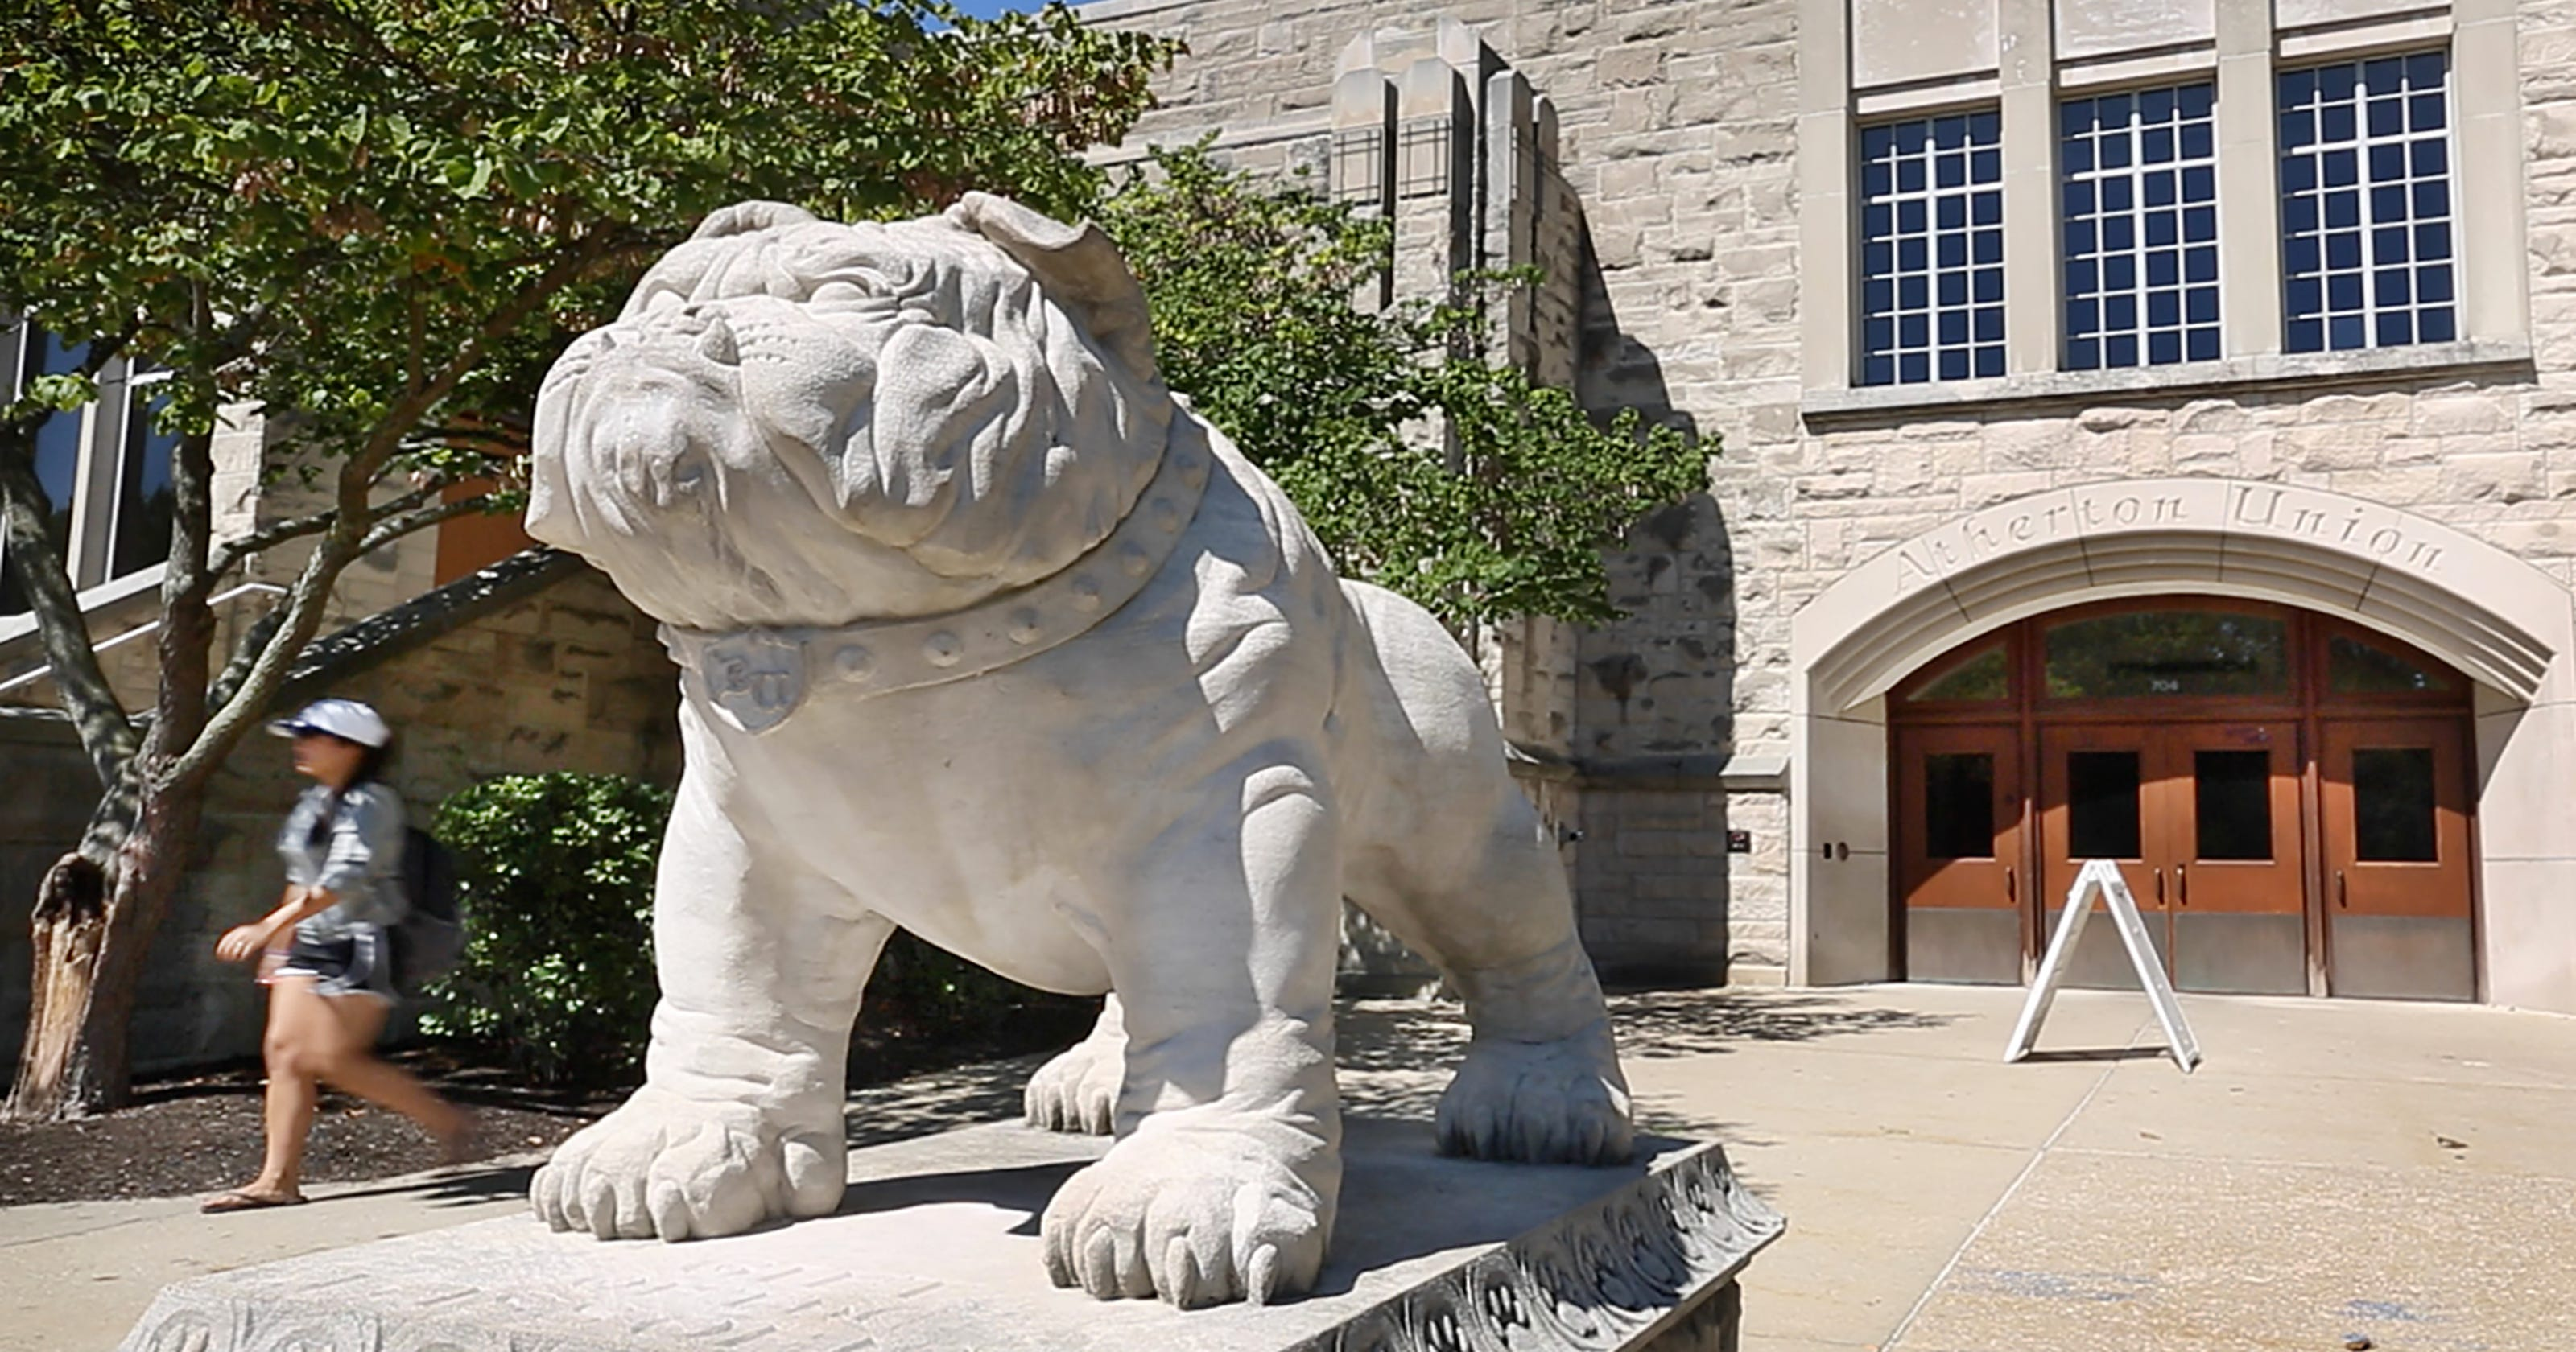 I am beyond angry': Ex-Butler student says school mishandled rape